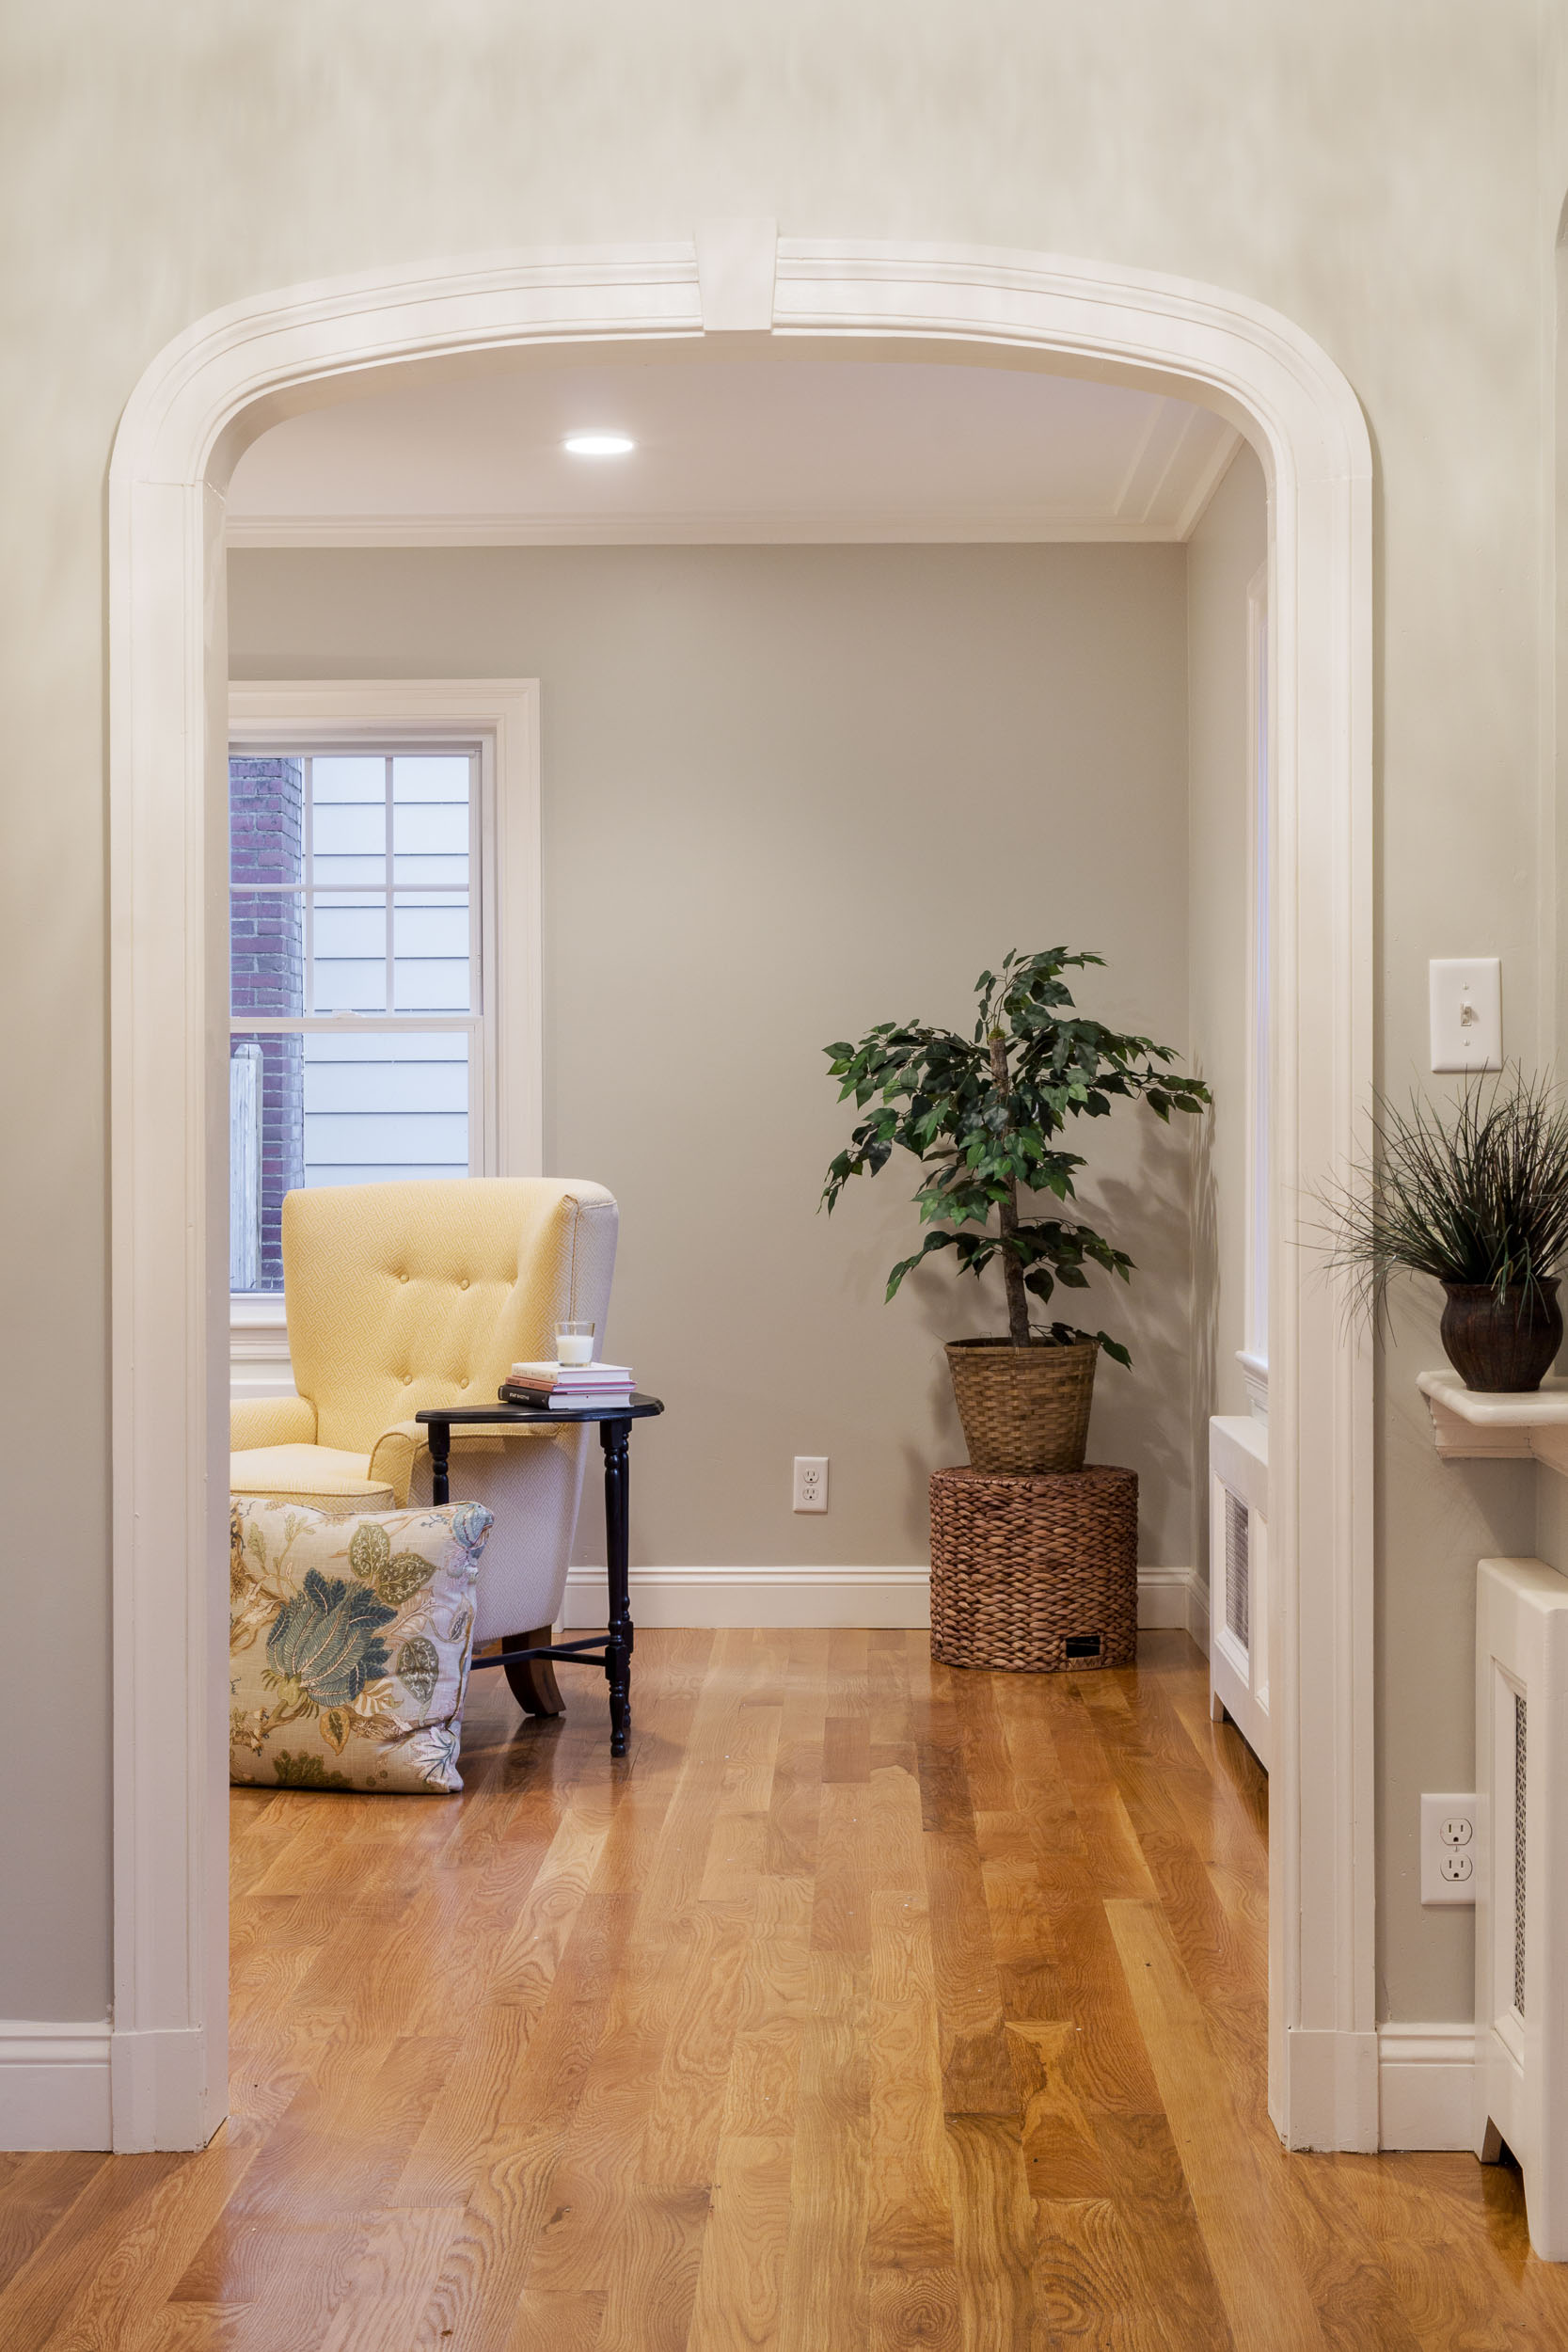 Home styling and design Medford, MA.